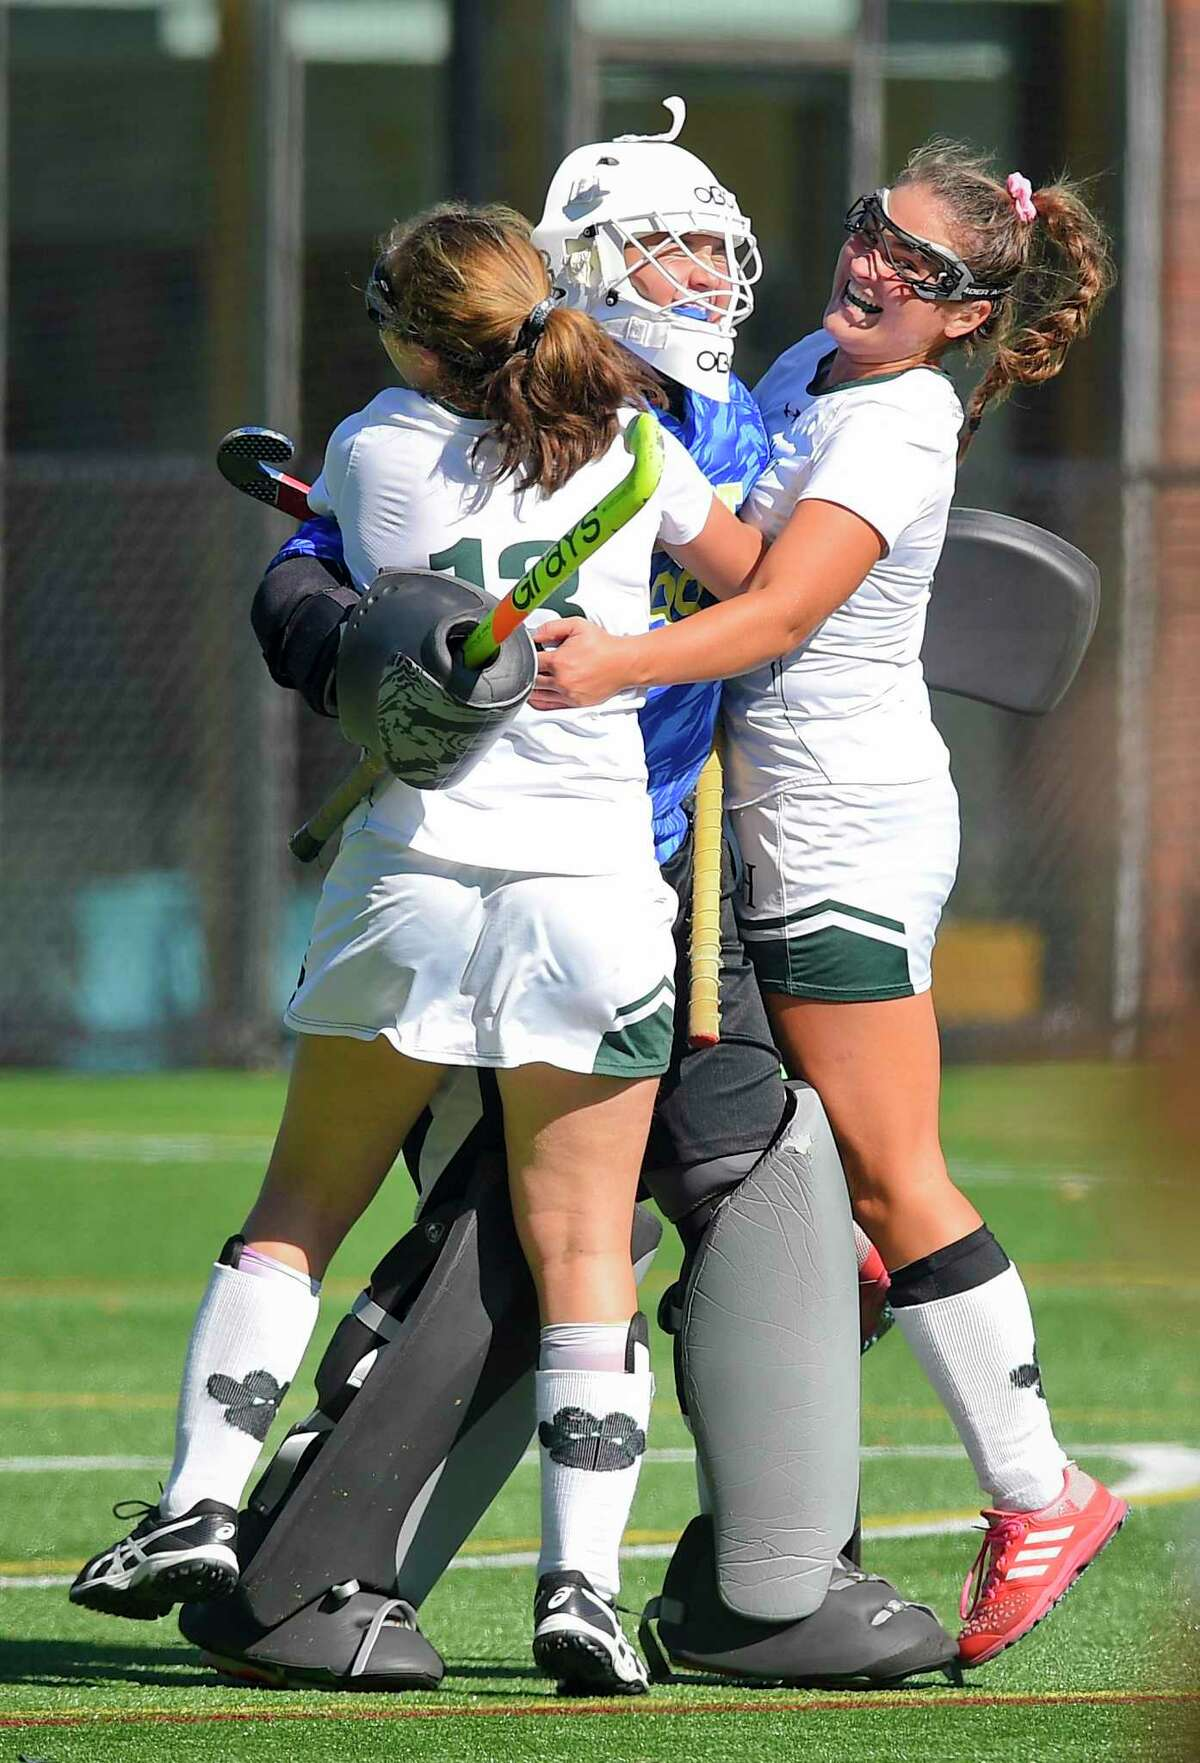 Sacred Heart goalie Olivia Caponiti celebrates the Tigers 3-0 win over Greenwich Academy with teammates Morgan Smith (15) and Marygrace Farrell (13) following an FAA girls field hockey match on Oct. 19, 2019 in Greenwich, Connecticut.